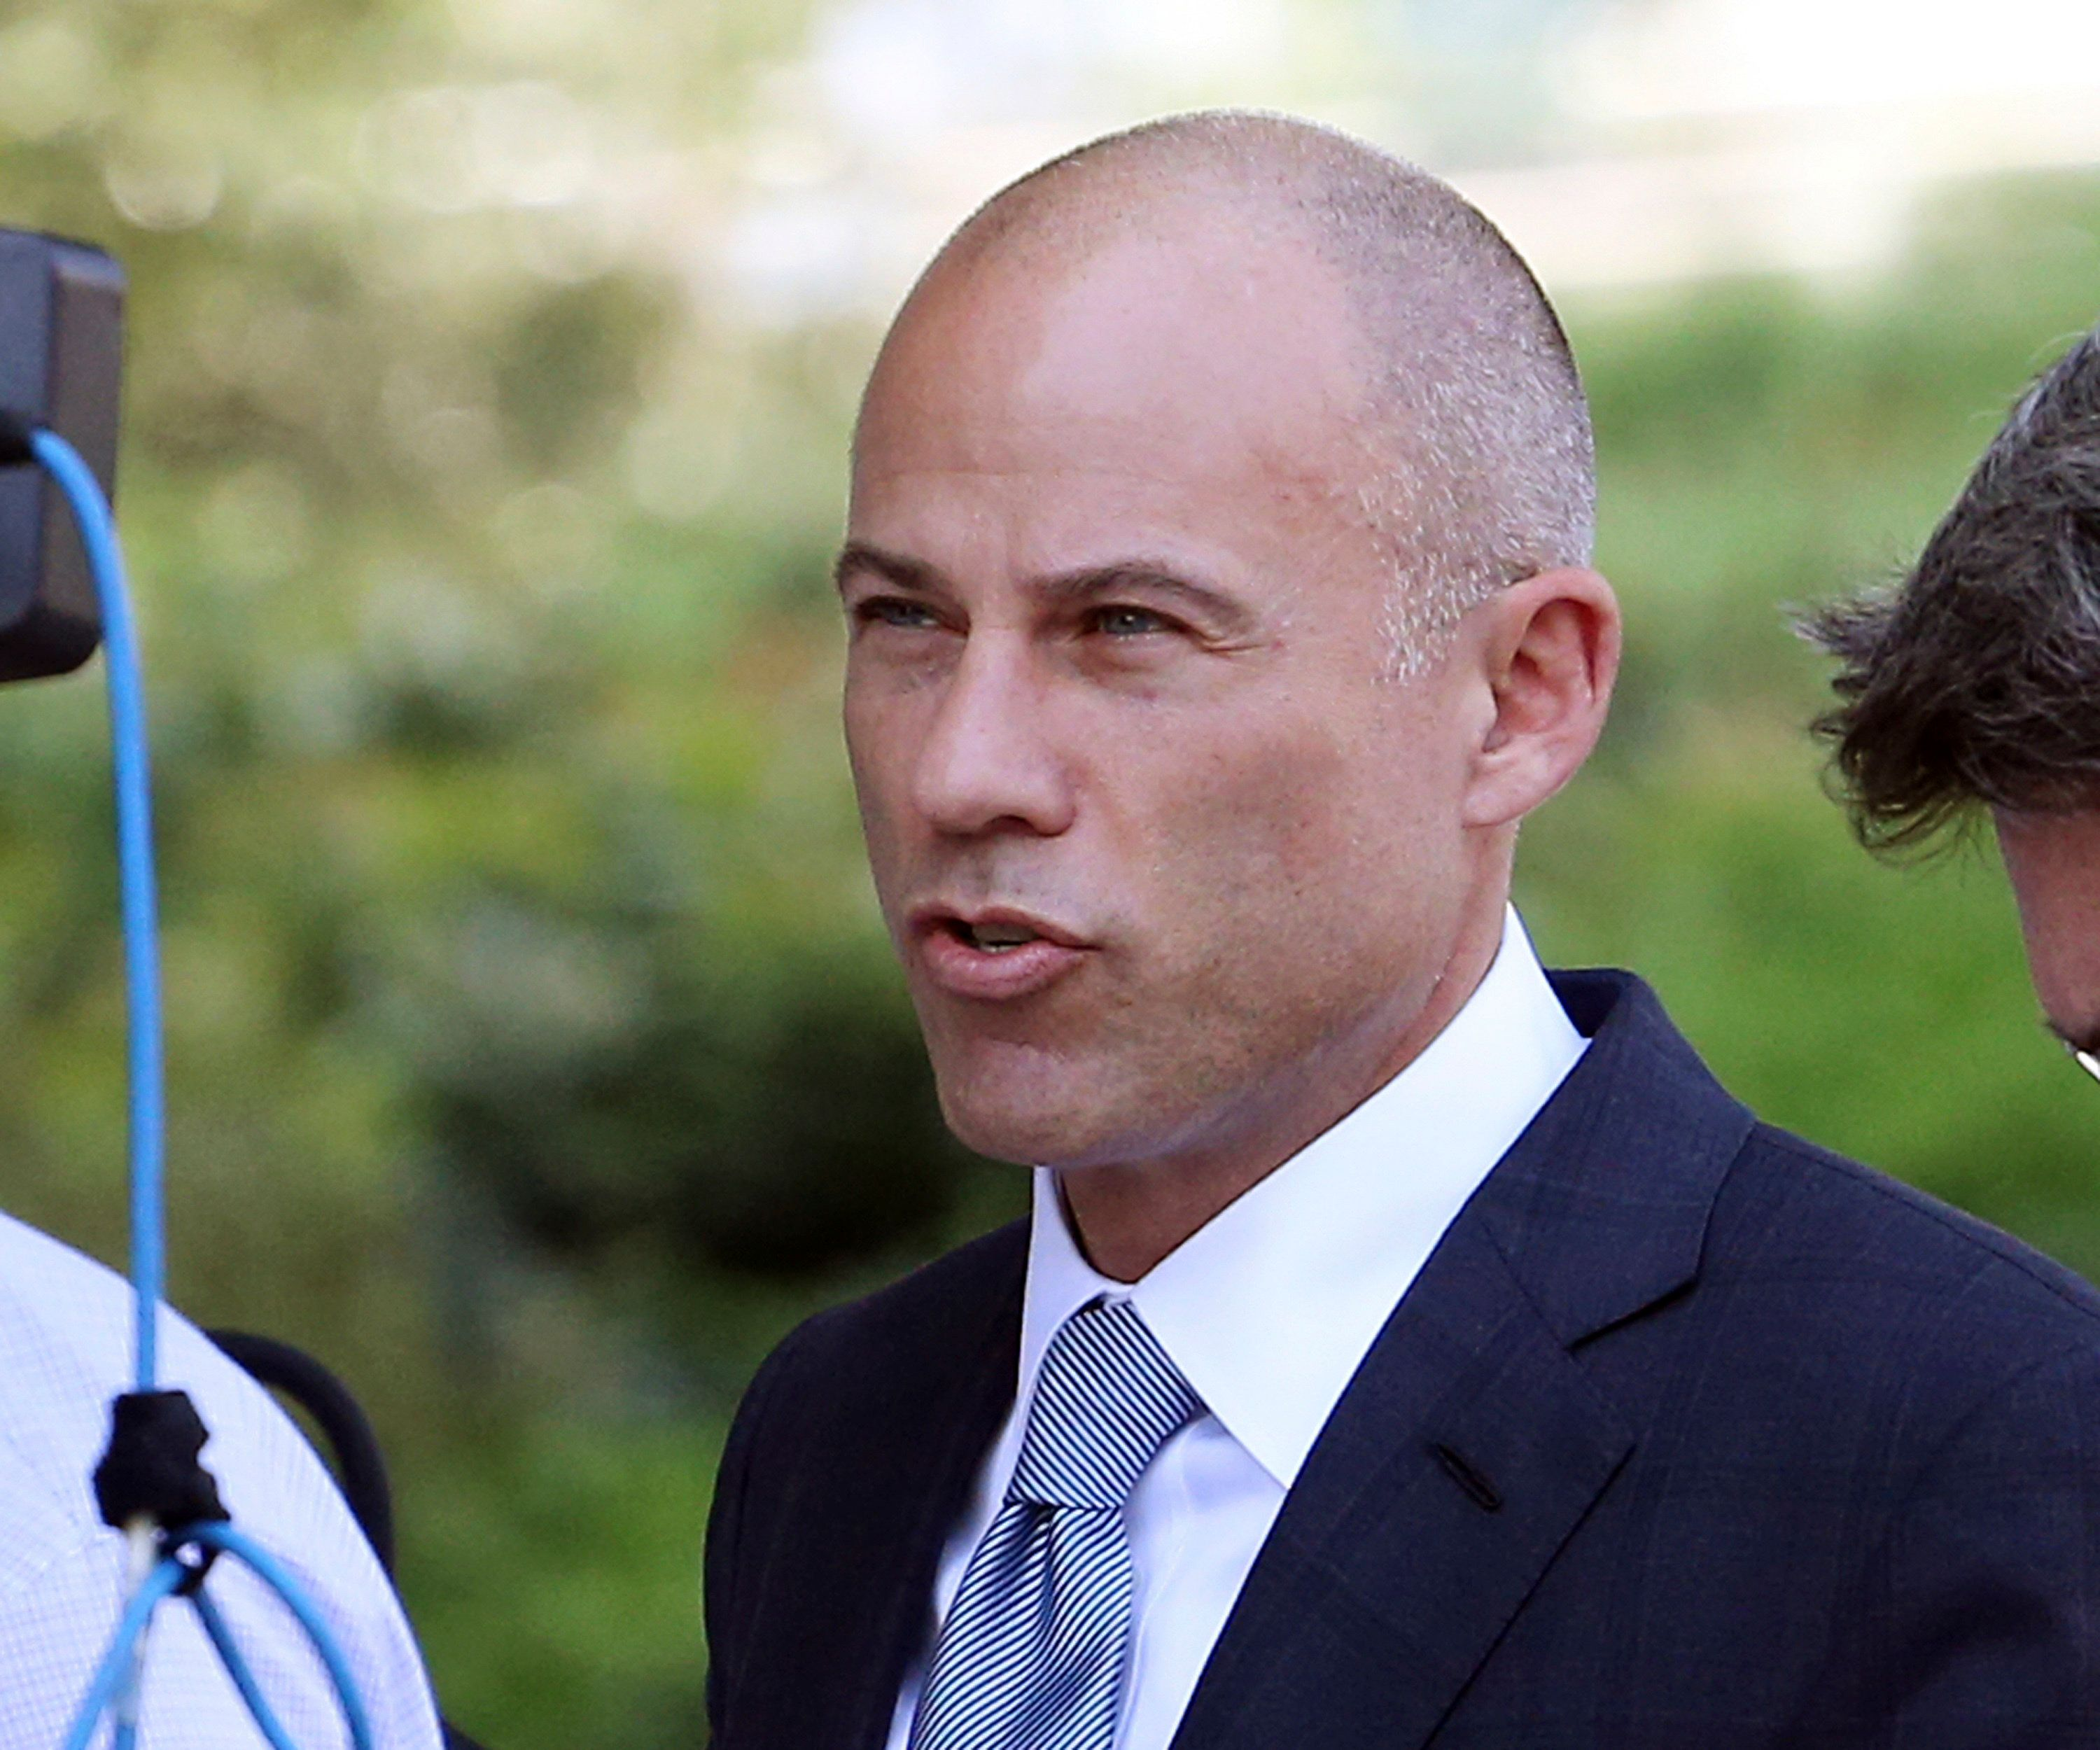 Michael Avenatti, attorney for porn actress Stormy Daniels, arrives at U.S. District Court in Los Angeles, Monday, Sept. 24, 2018. Lawyers for President Donald Trump are going to court to urge a judge to toss out a lawsuit by the actress, whose given name is Stephanie Clifford, over a hush-money deal over their alleged affair. Avenatti is expected to argue that the agreement that resulted in a $130,000 payout was not valid and they won't carry out threats to sue her for breaking the agreement. (AP Photo/Reed Saxon)